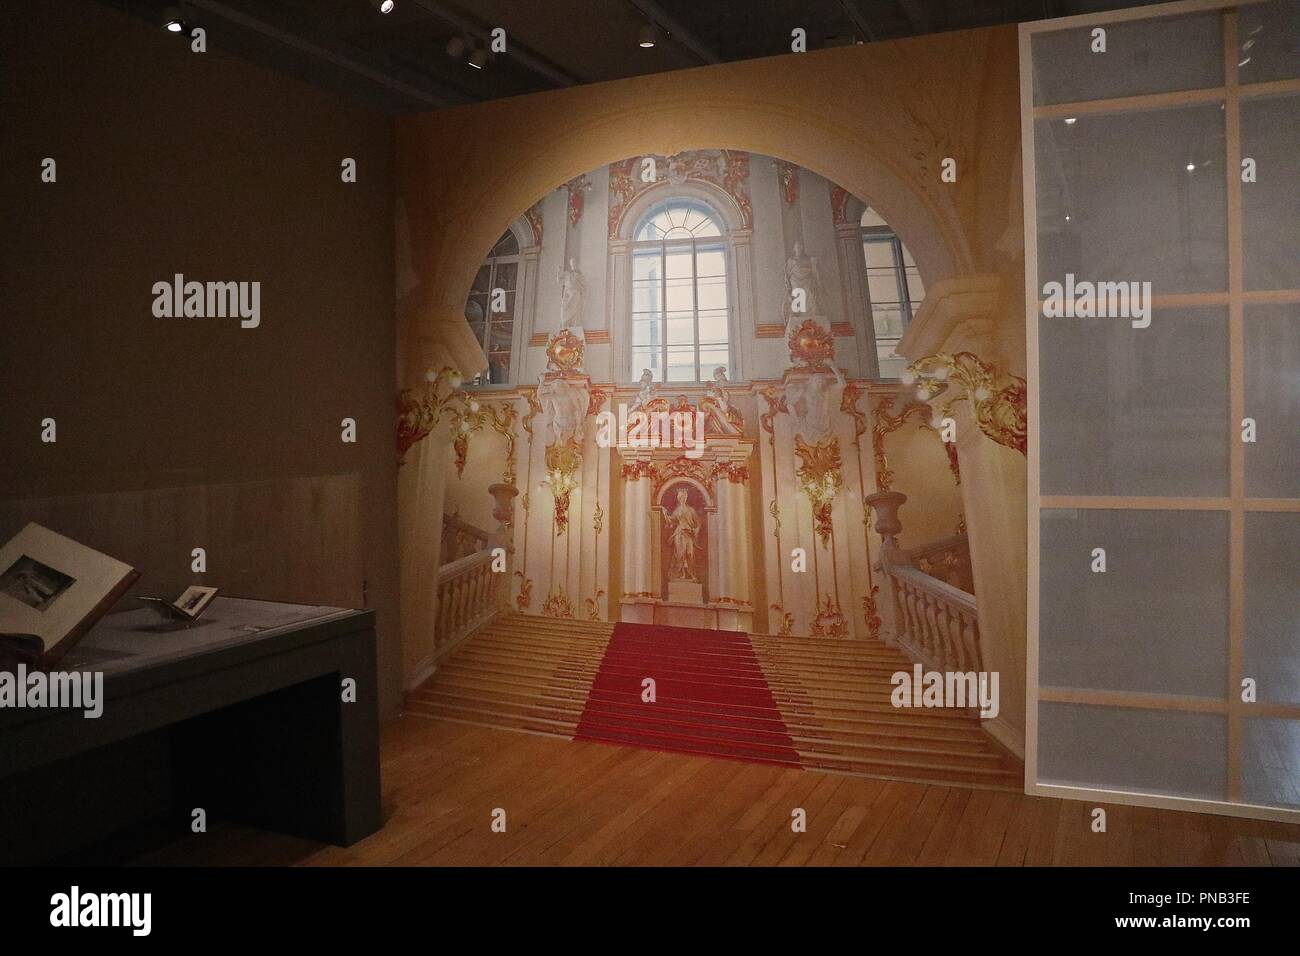 Science Museum 100 years since the death of russia's last Tsar 20 September 2018 - Stock Image